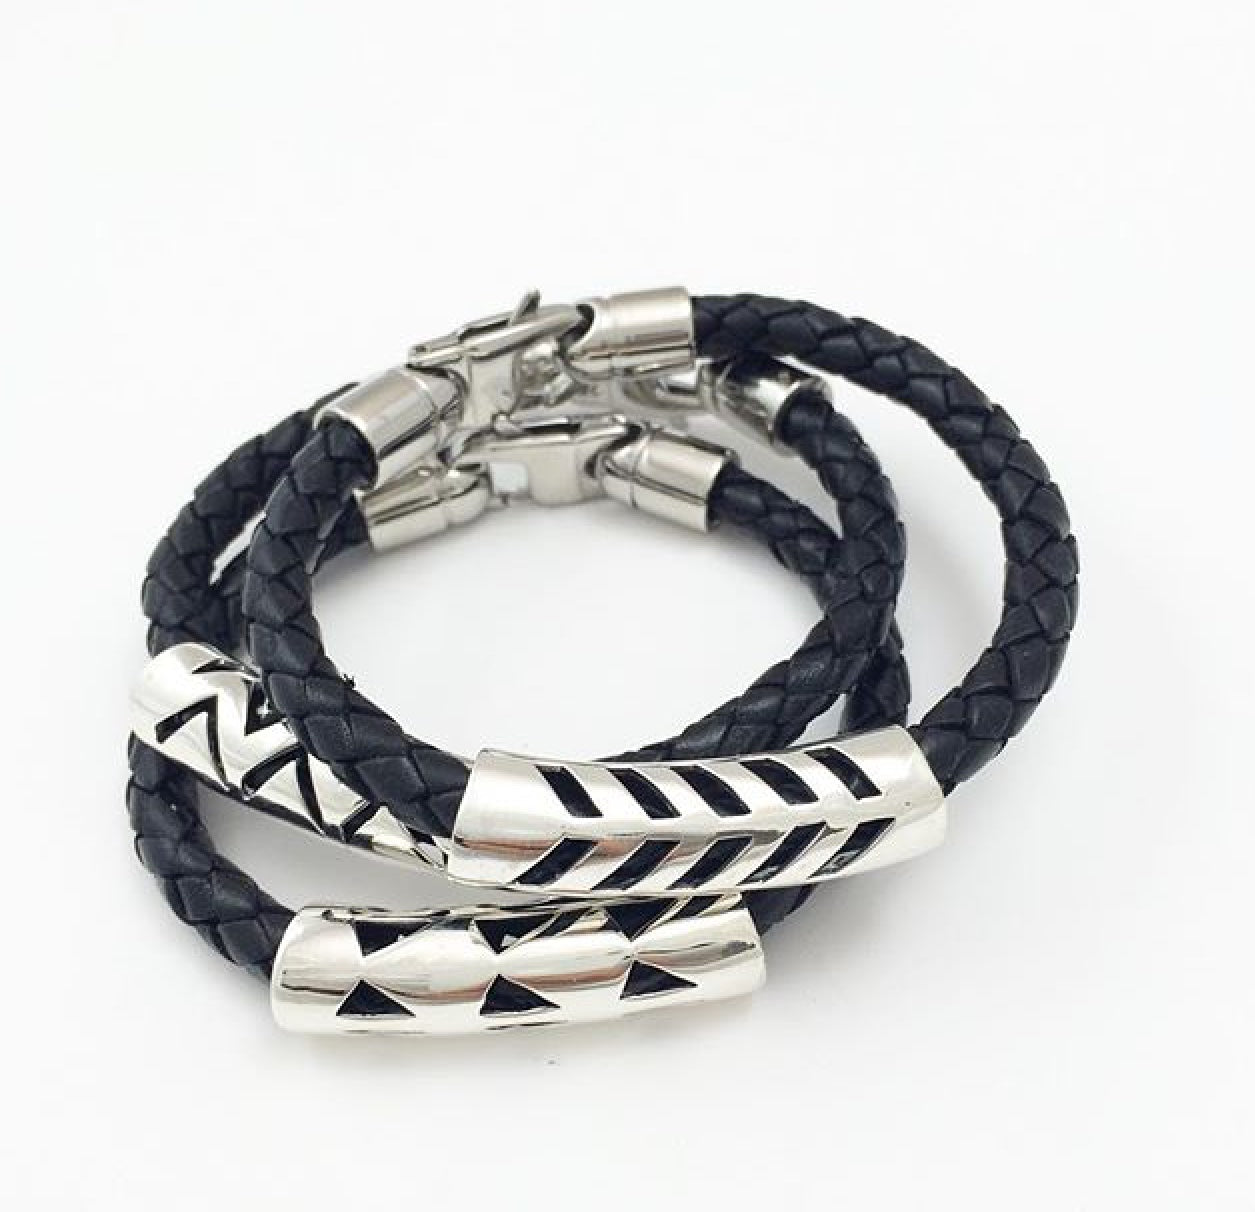 Kapa Leather Bracelet